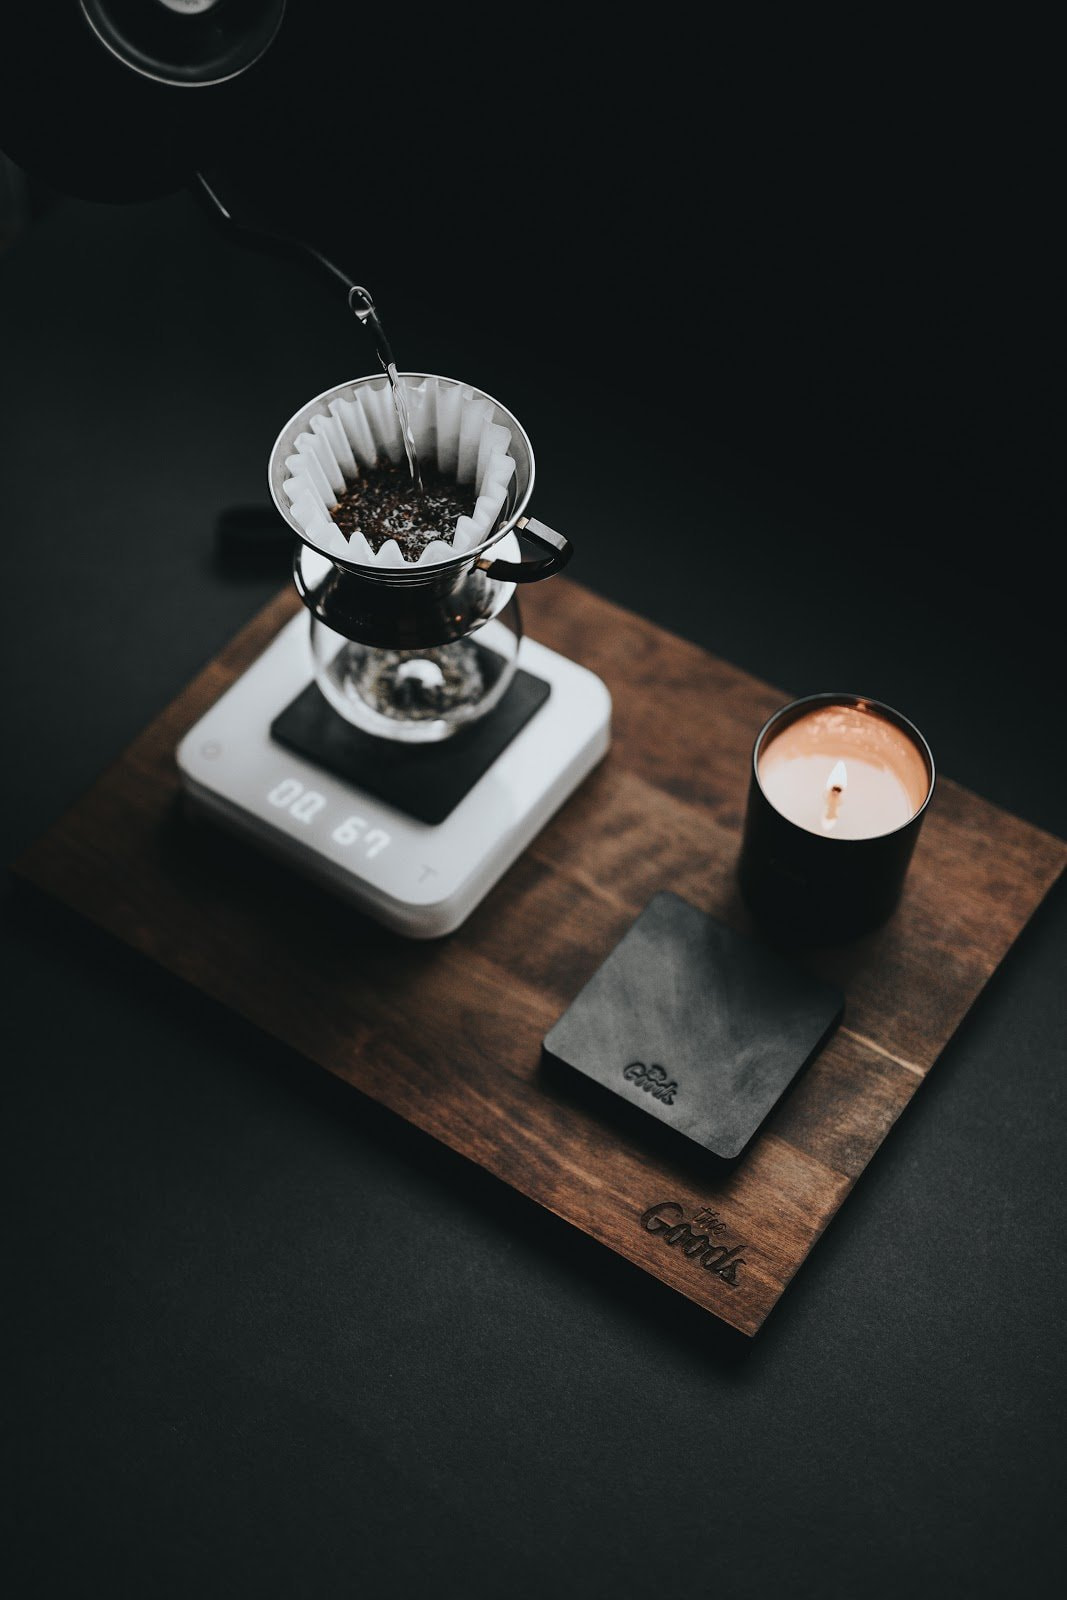 A flatlay of a drip coffee and a candle by Nathan Dumlao